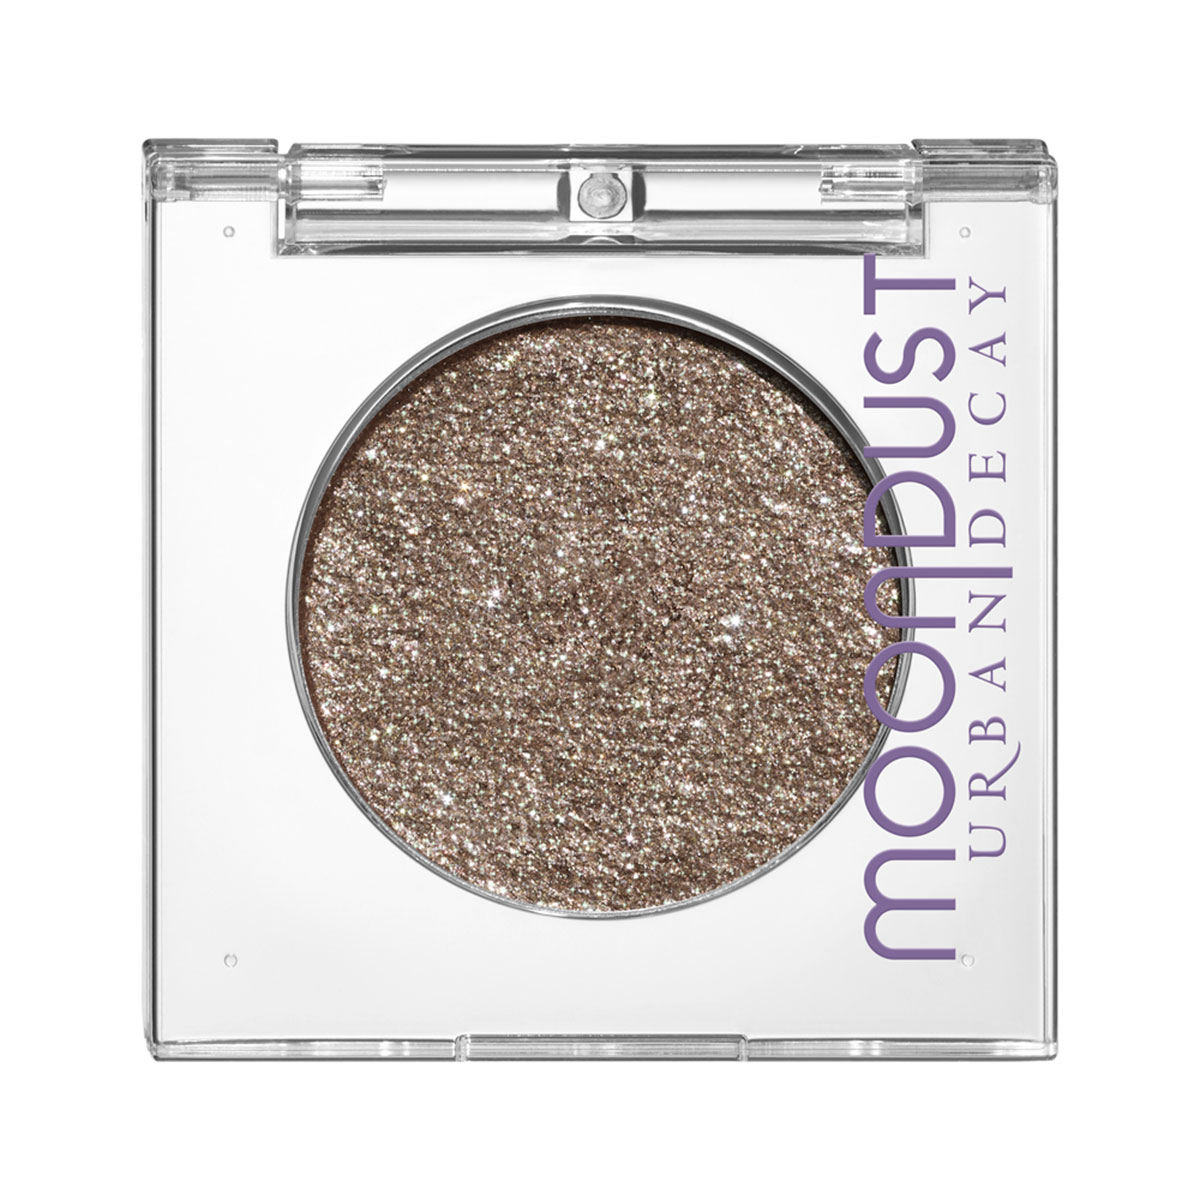 24/7 MOONDUST EYESHADOW (SOMBRA DE OJOS)